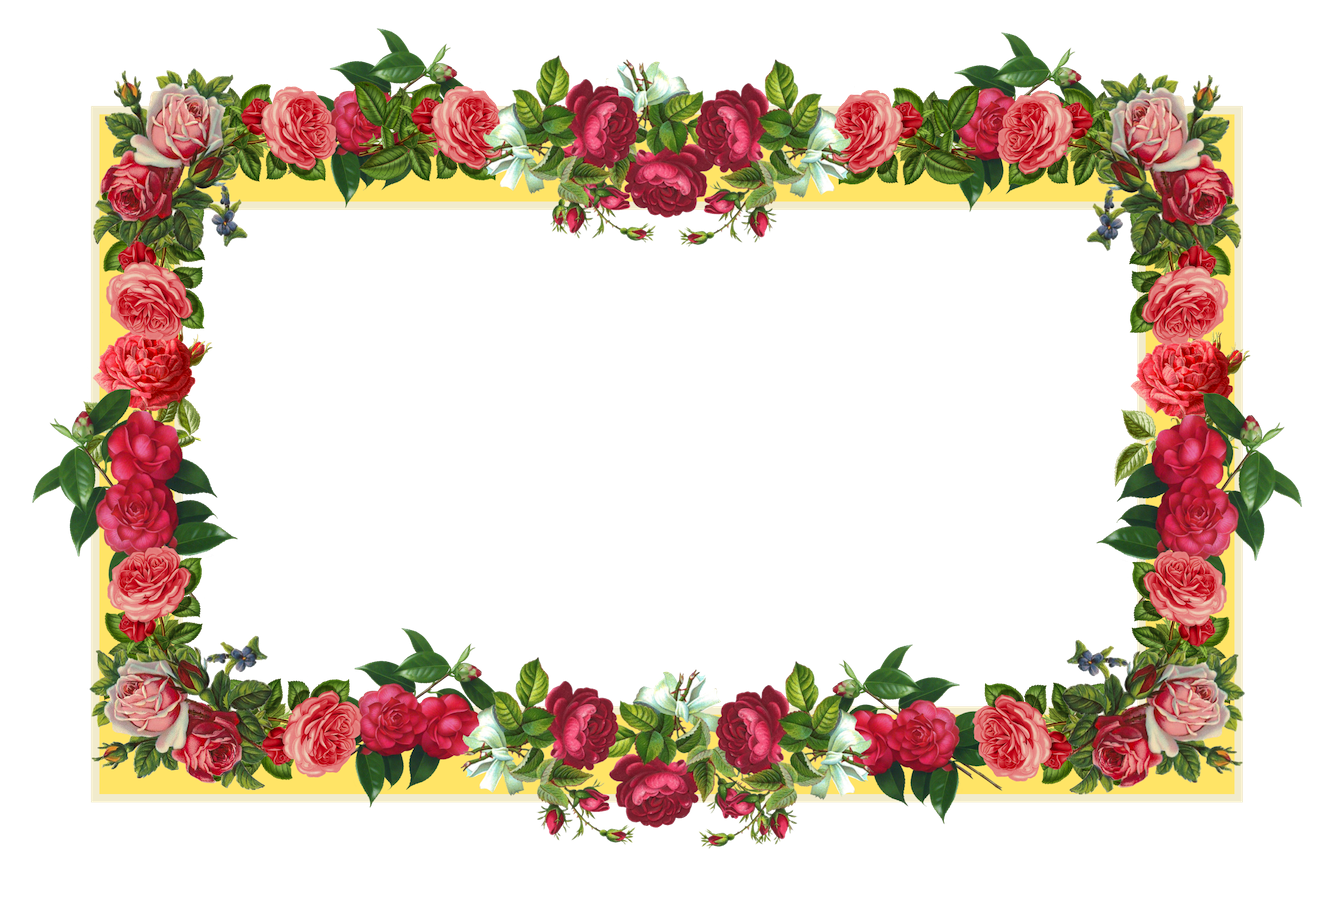 Flowers borders png. Images